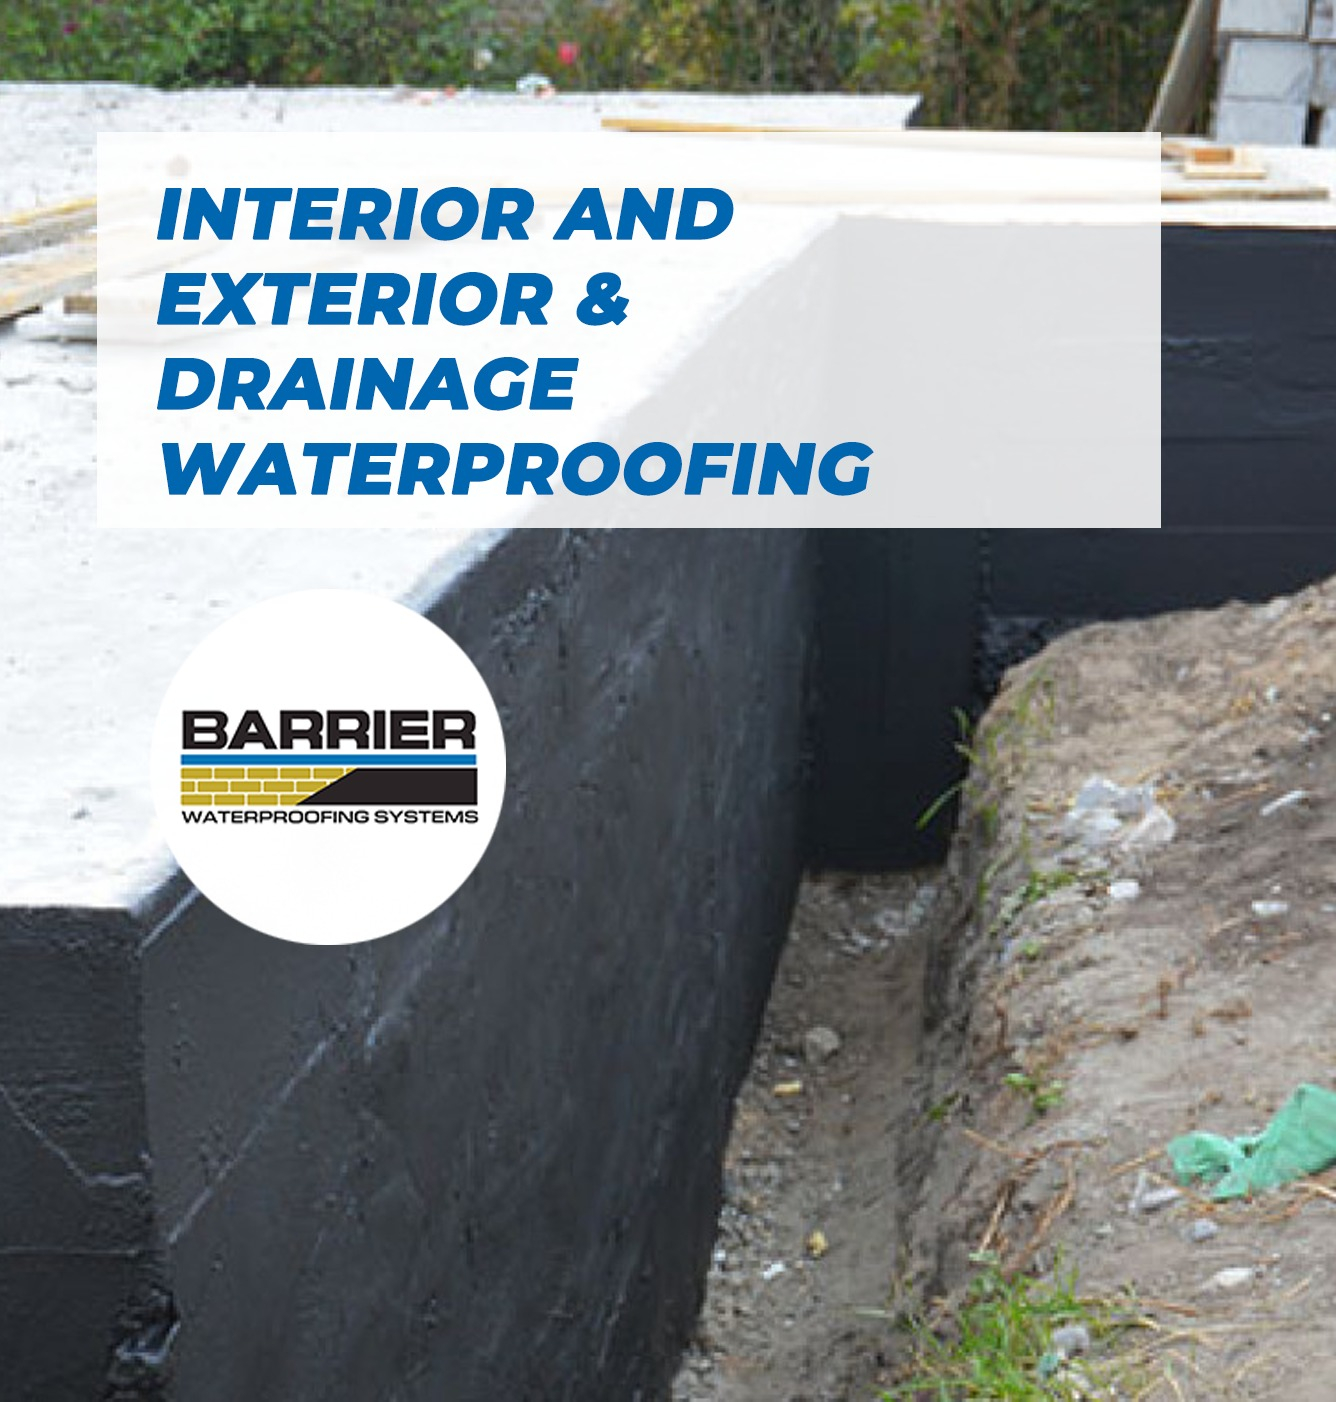 Interior And Exterior Waterproofing Drainage Barrier Waterproofing Systems Crawl Space Encapsulation And Foundation Repair Services